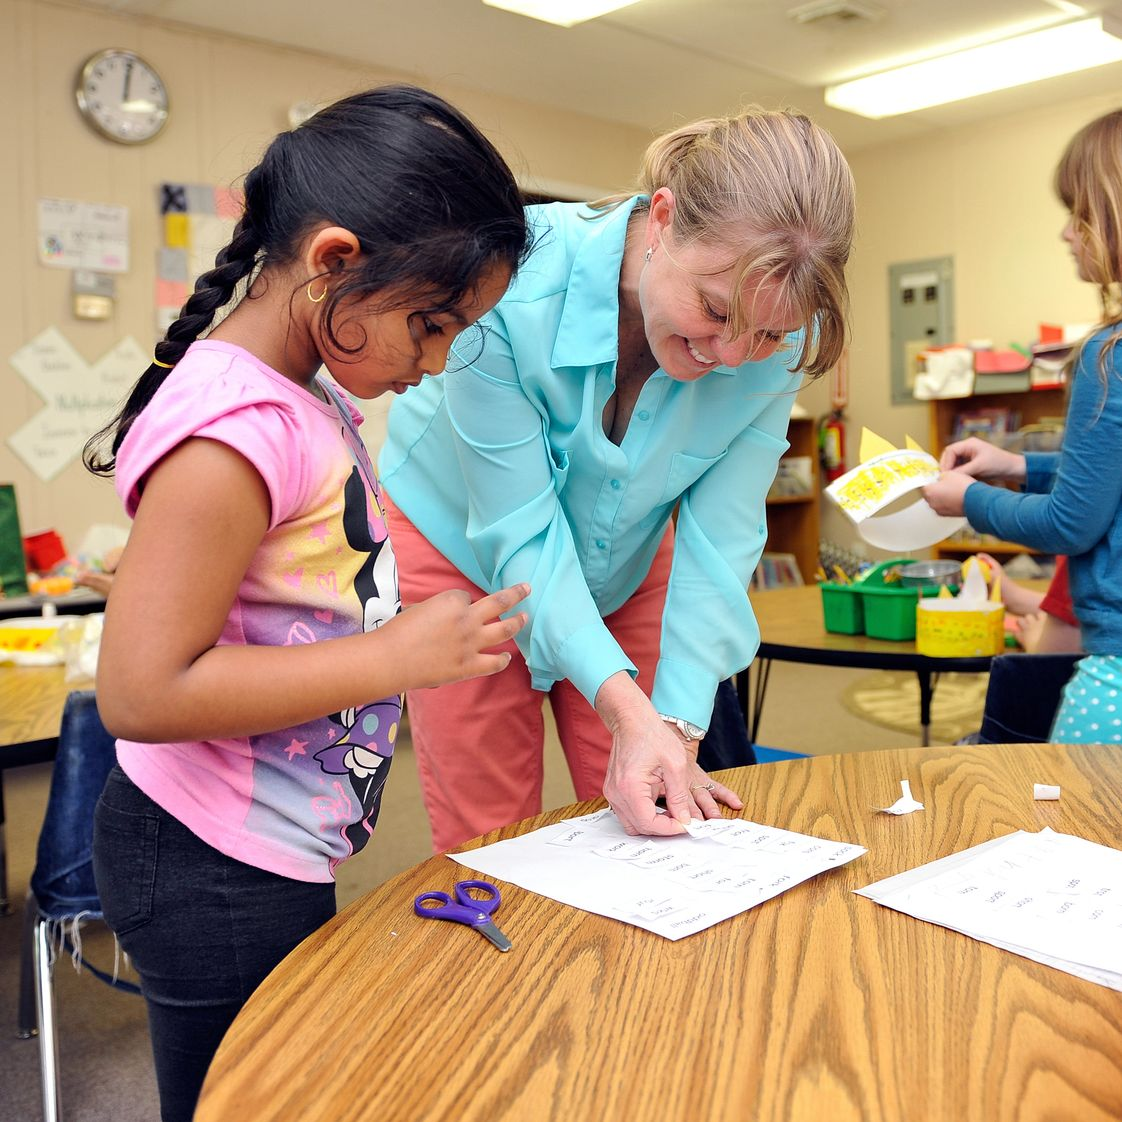 Rainard School for Gifted Students Photo